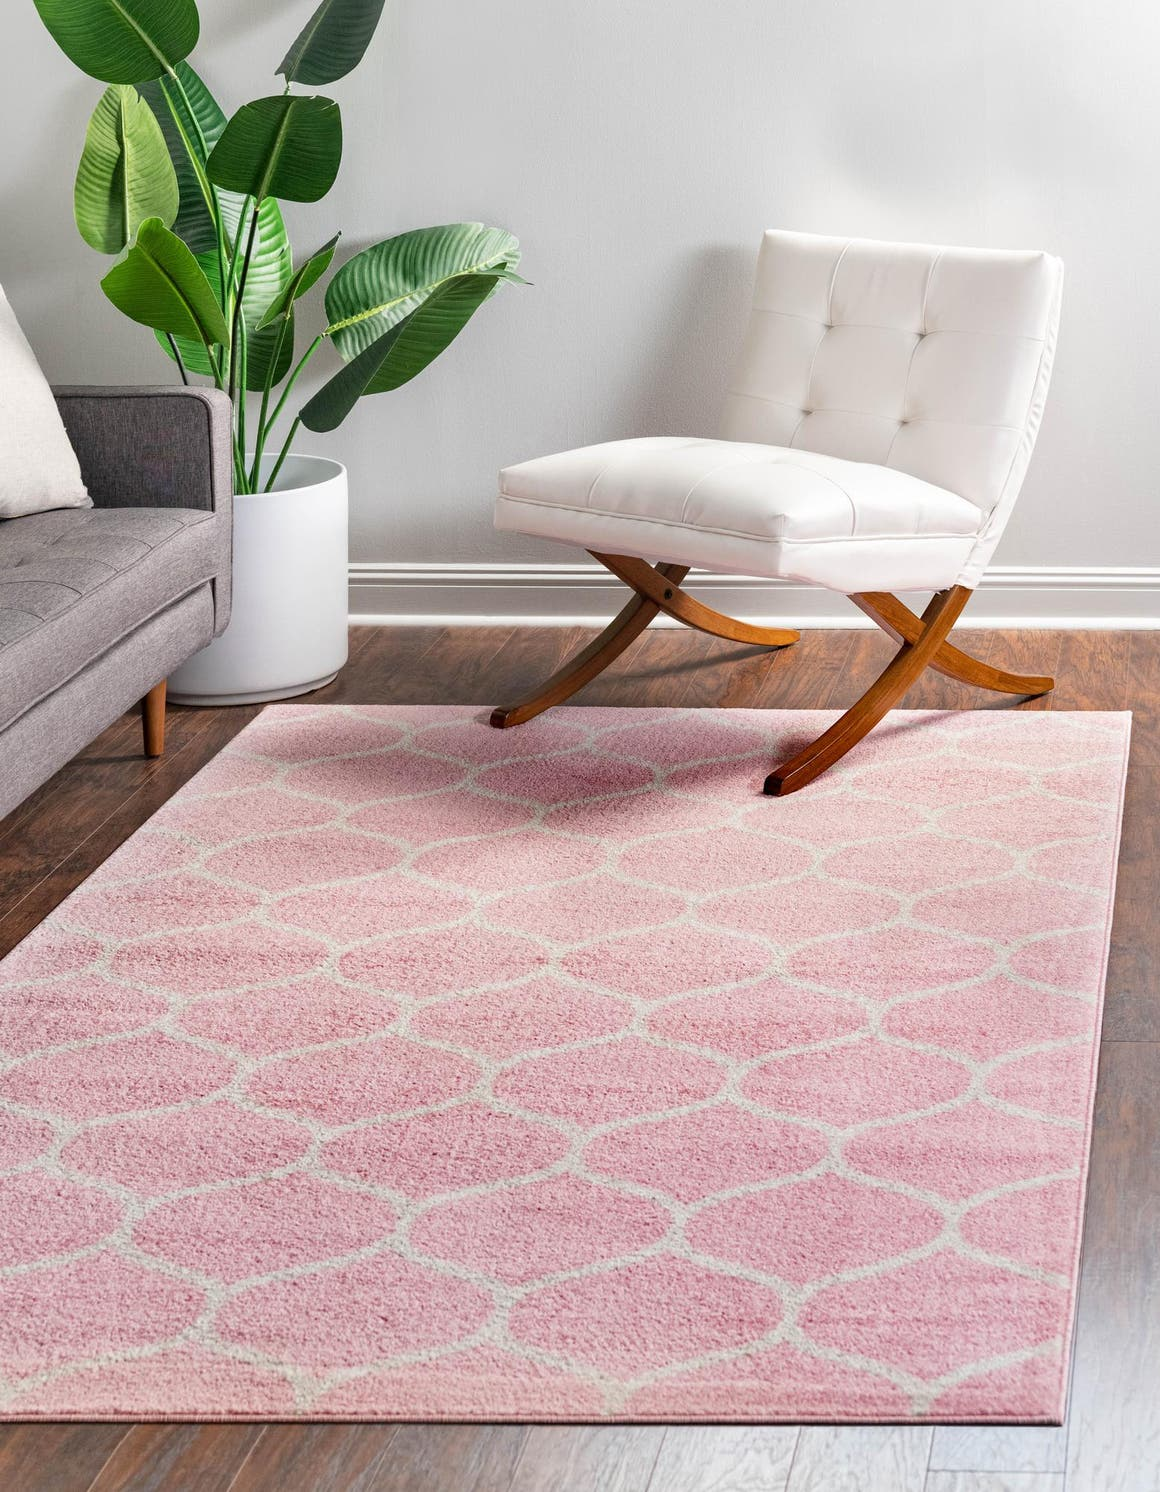 4' x 6' Trellis Frieze Rug main image